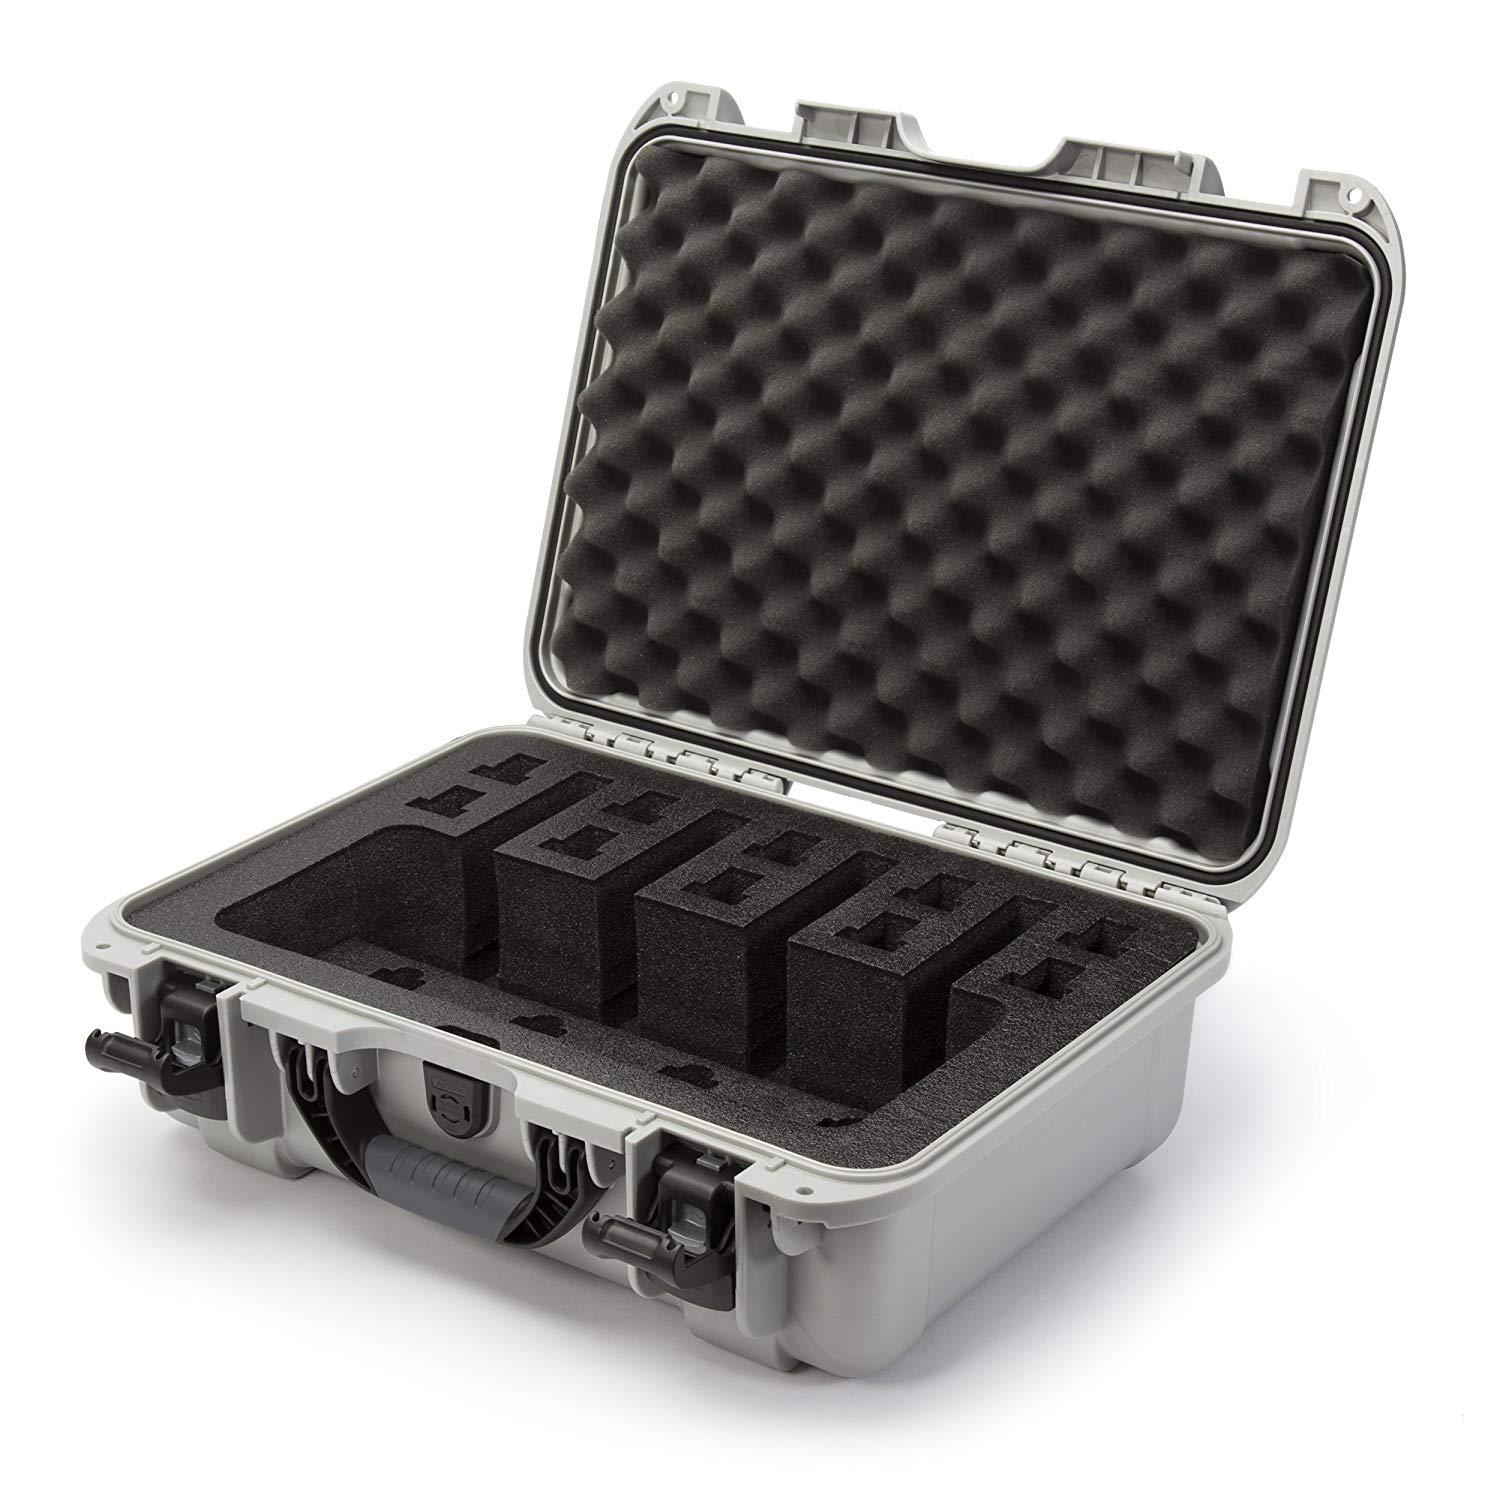 Nanuk 925 Waterproof Professional Gun Case, Military Approved with Custom Foam Insert for 4UP - Black